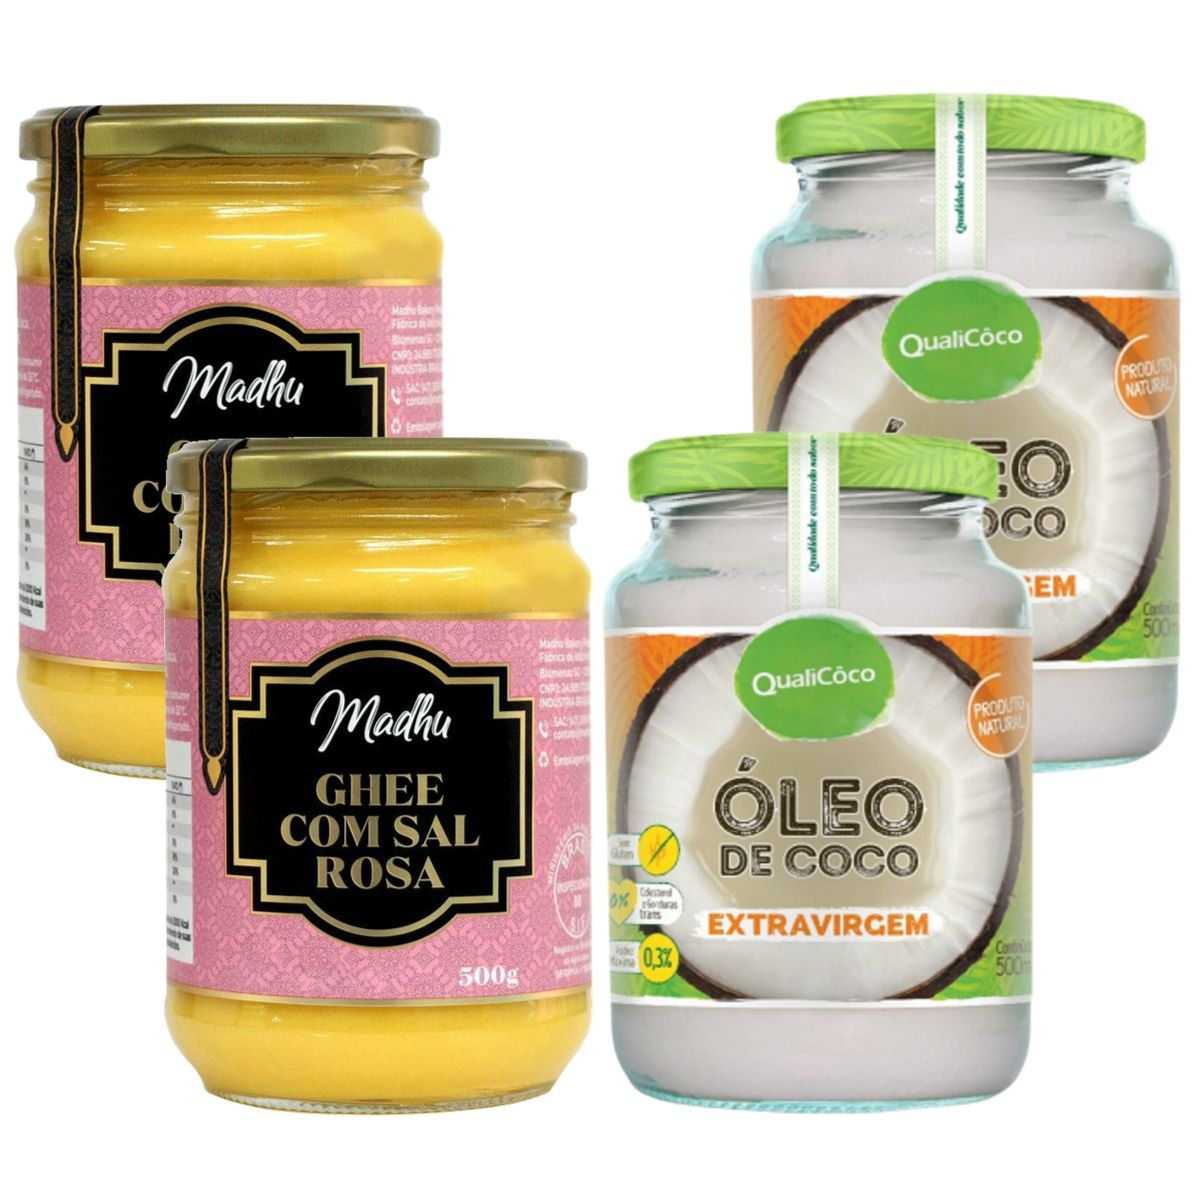 Kit 2 Oleo De Coco Extra Virgem 500ml + 2 Manteiga Ghee Clarificada C/ Sal Rosa do Himalaia 500ml